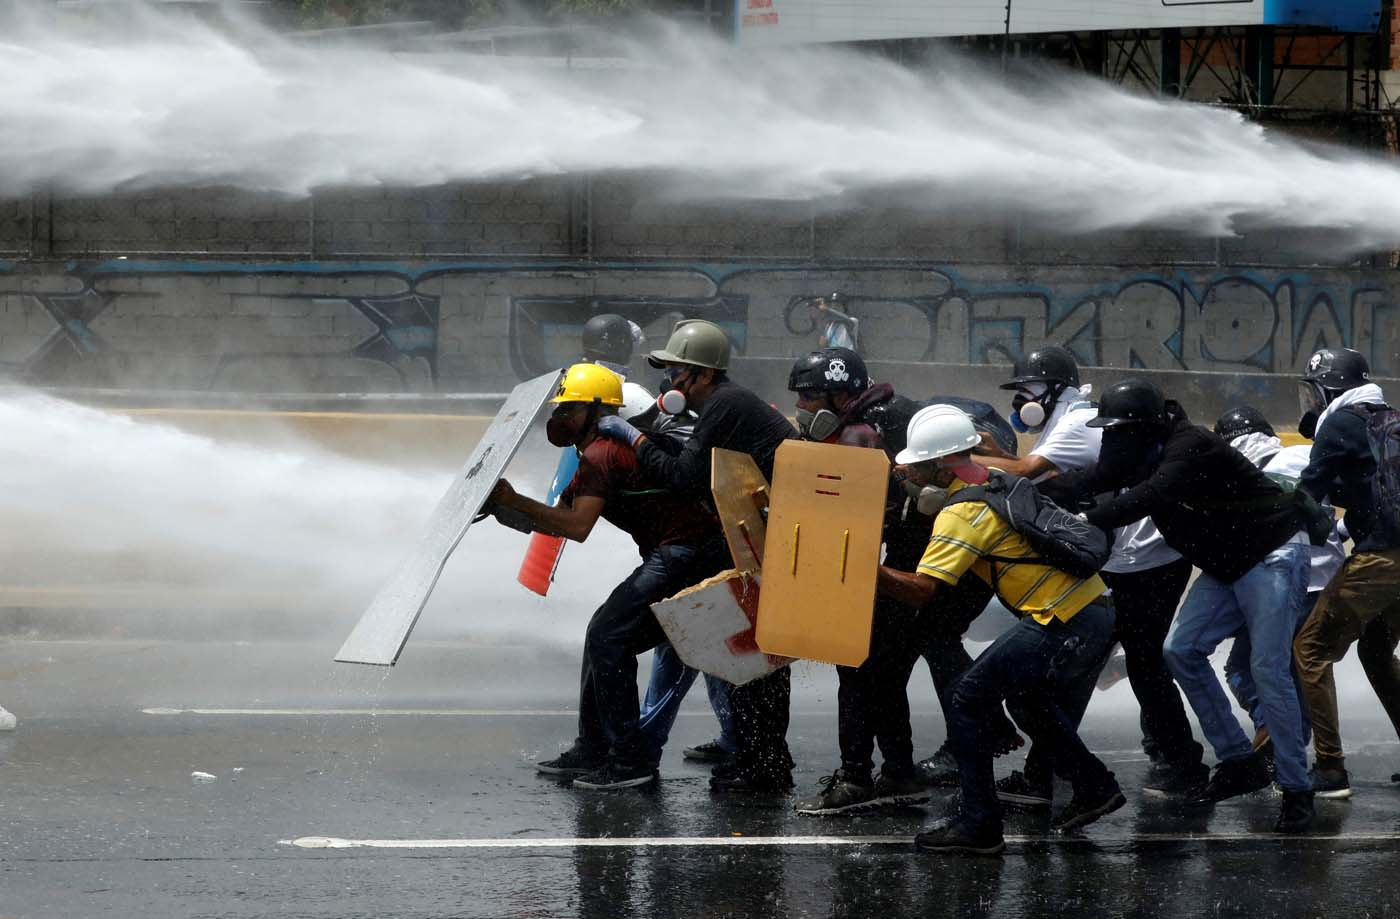 Demonstrators clash with riot security forces while rallying against Venezuela's President Nicolas Maduro in Caracas, Venezuela, May 31, 2017. REUTERS/Carlos Garcia Rawlins TPX IMAGES OF THE DAY